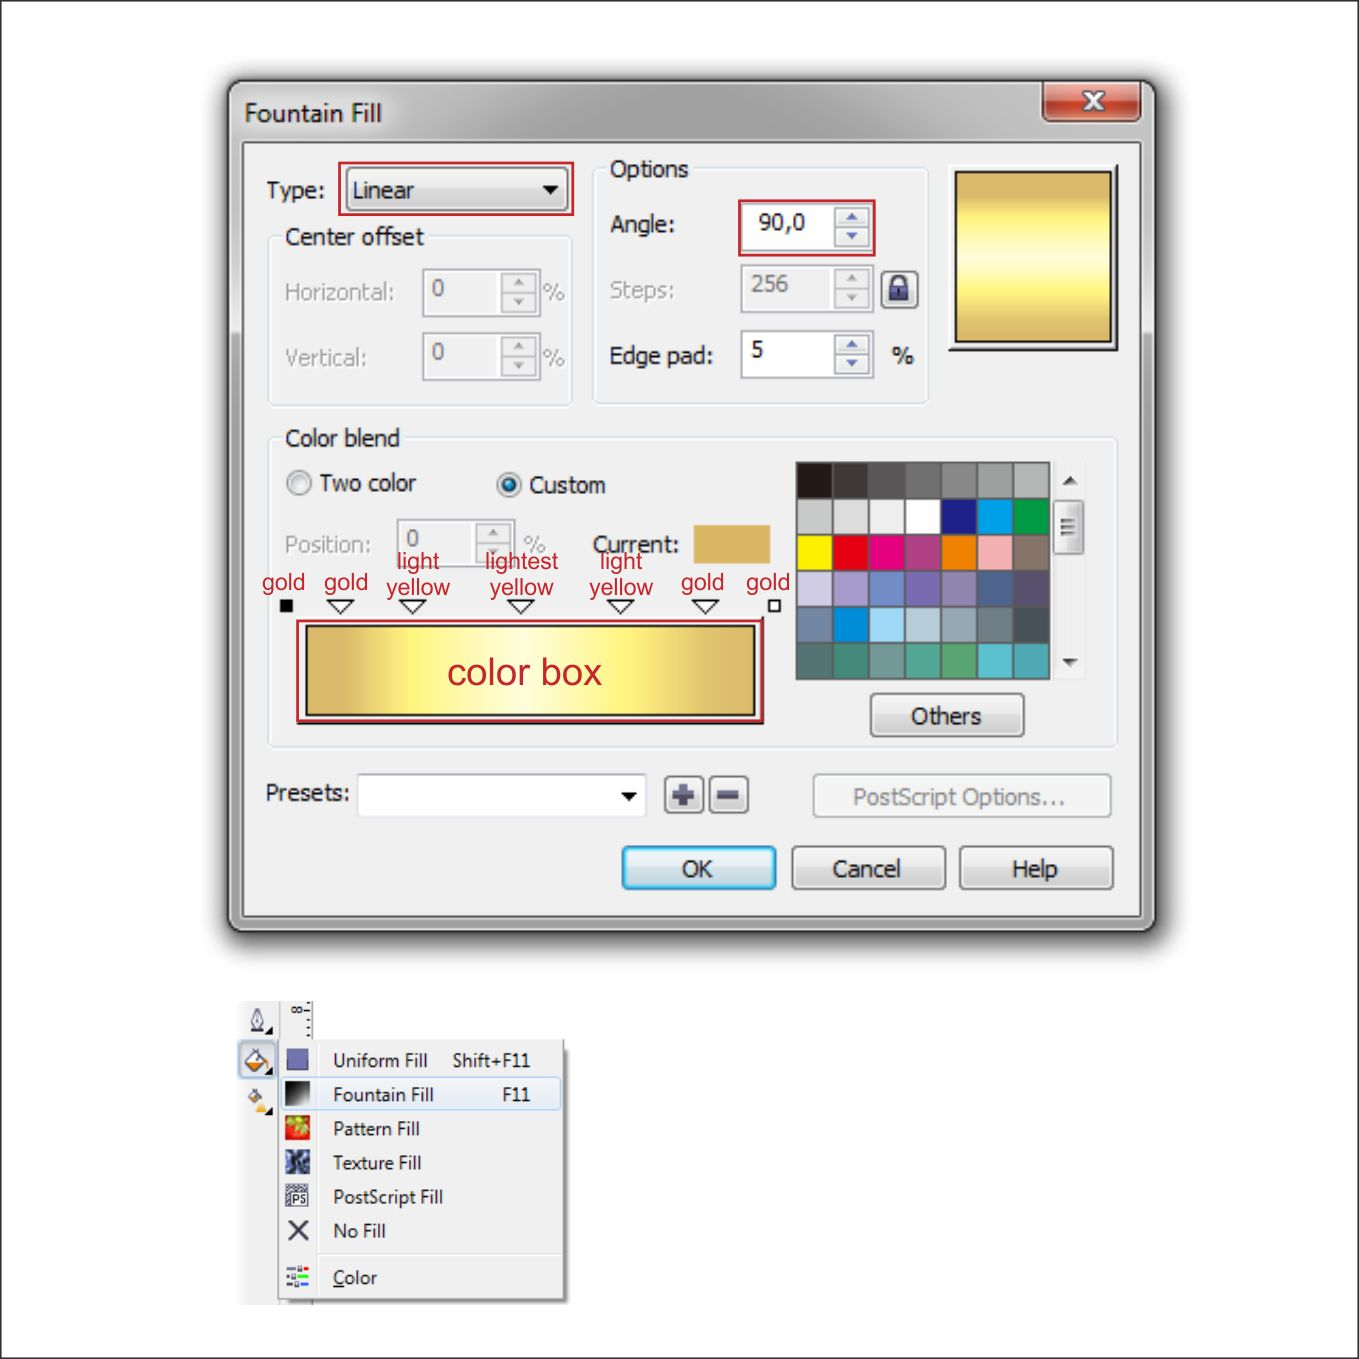 Coreldraw color palette free download - Now Lets Put Color In It Go To The Fountain Fill Tool And Set The Value The Same As The Golden Second Circle